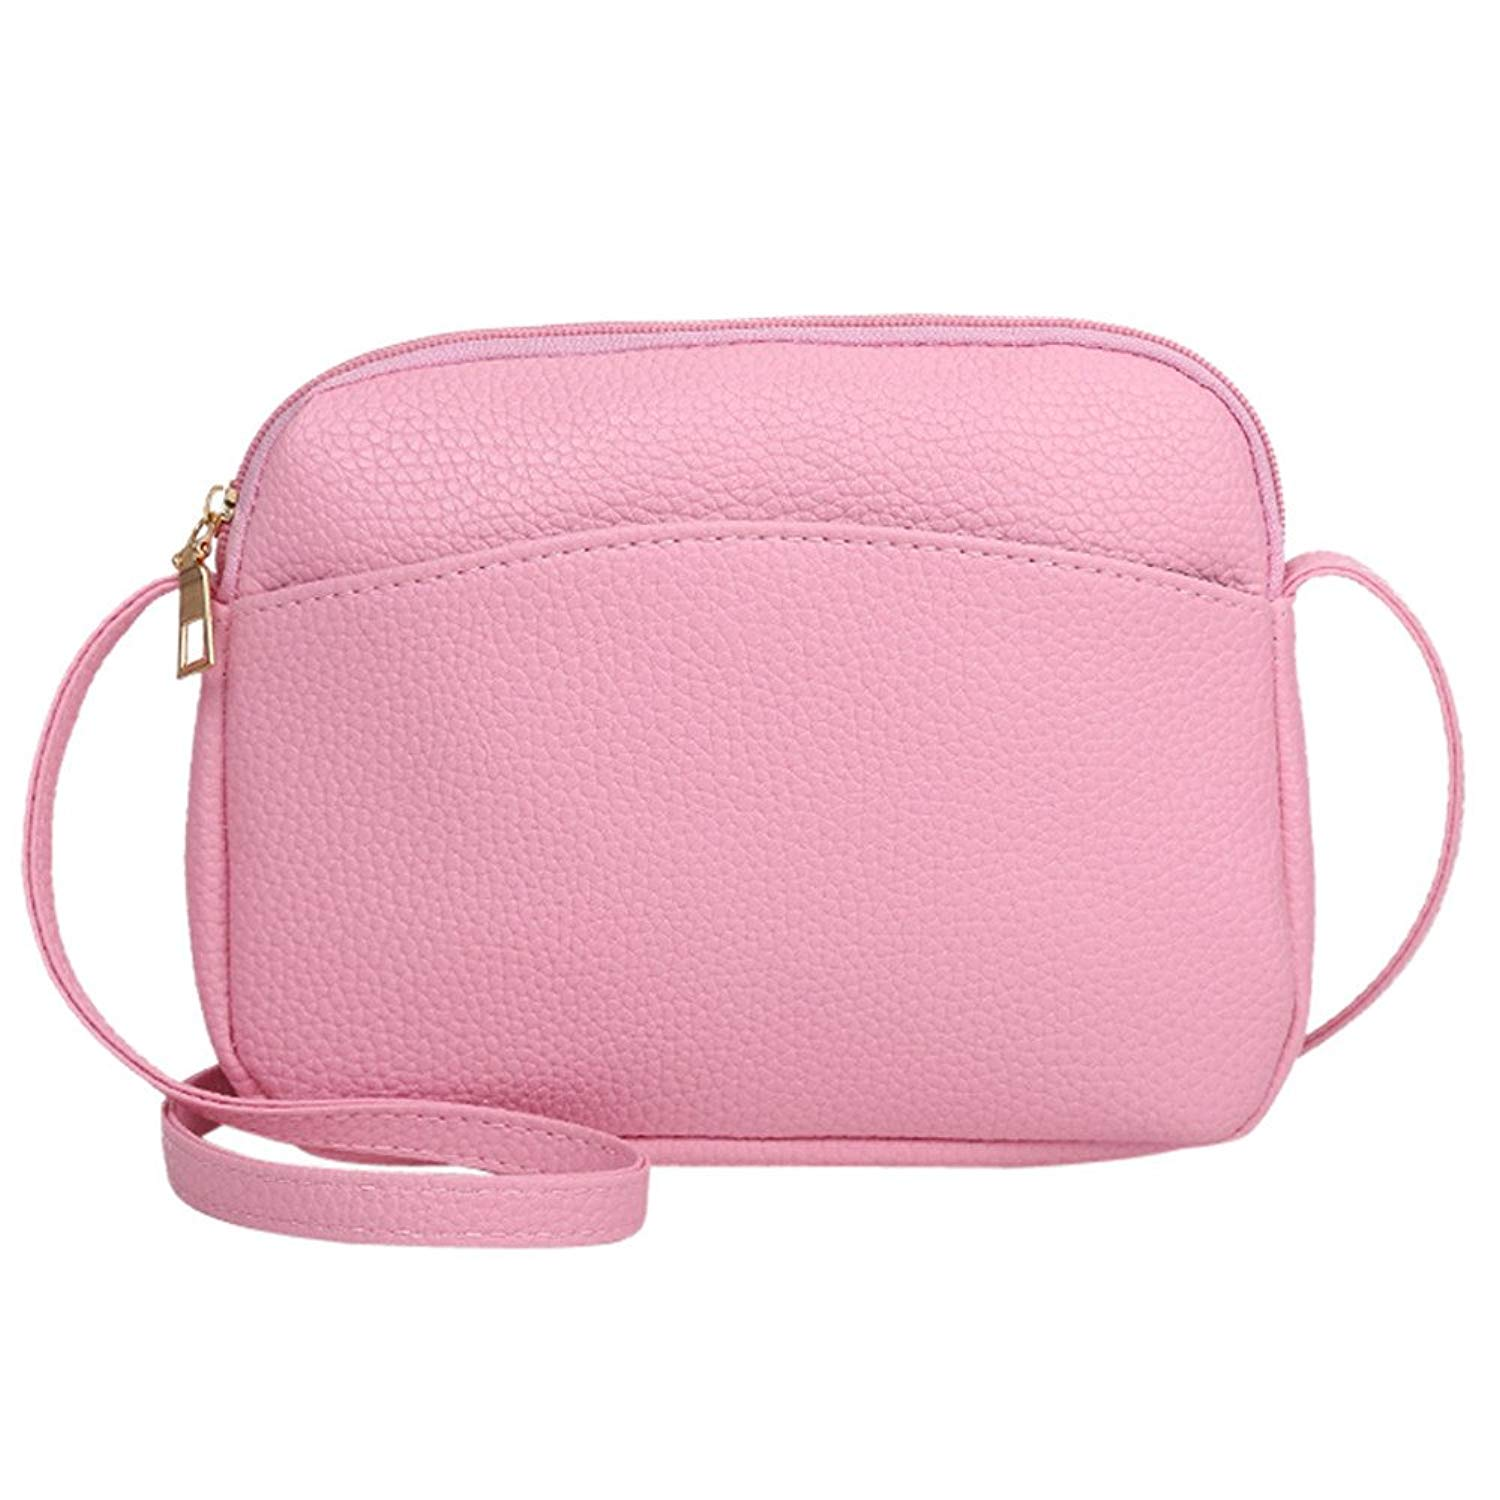 Women Bag Clearance! ZOMUSAR Vintage Women Pure Color Litchi Pattern PU Leather Crossbody Shoulder Bag